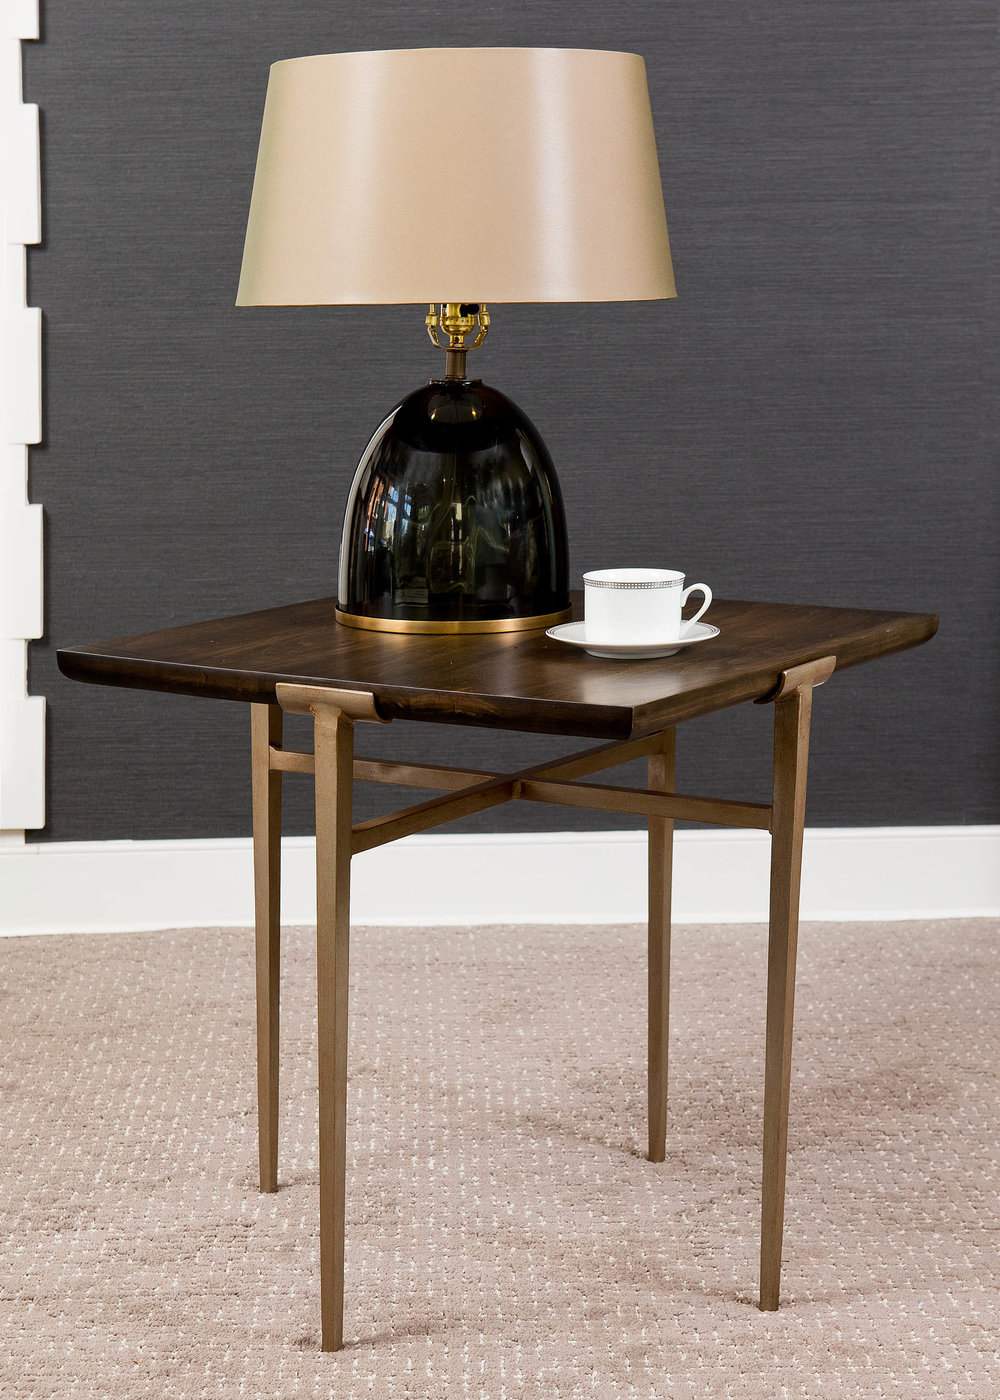 """It is not enough for a side table to be only functional. The silhouette and materials should add a spark of interest to your home. "" - Paul Miller, Lookbook 2019"